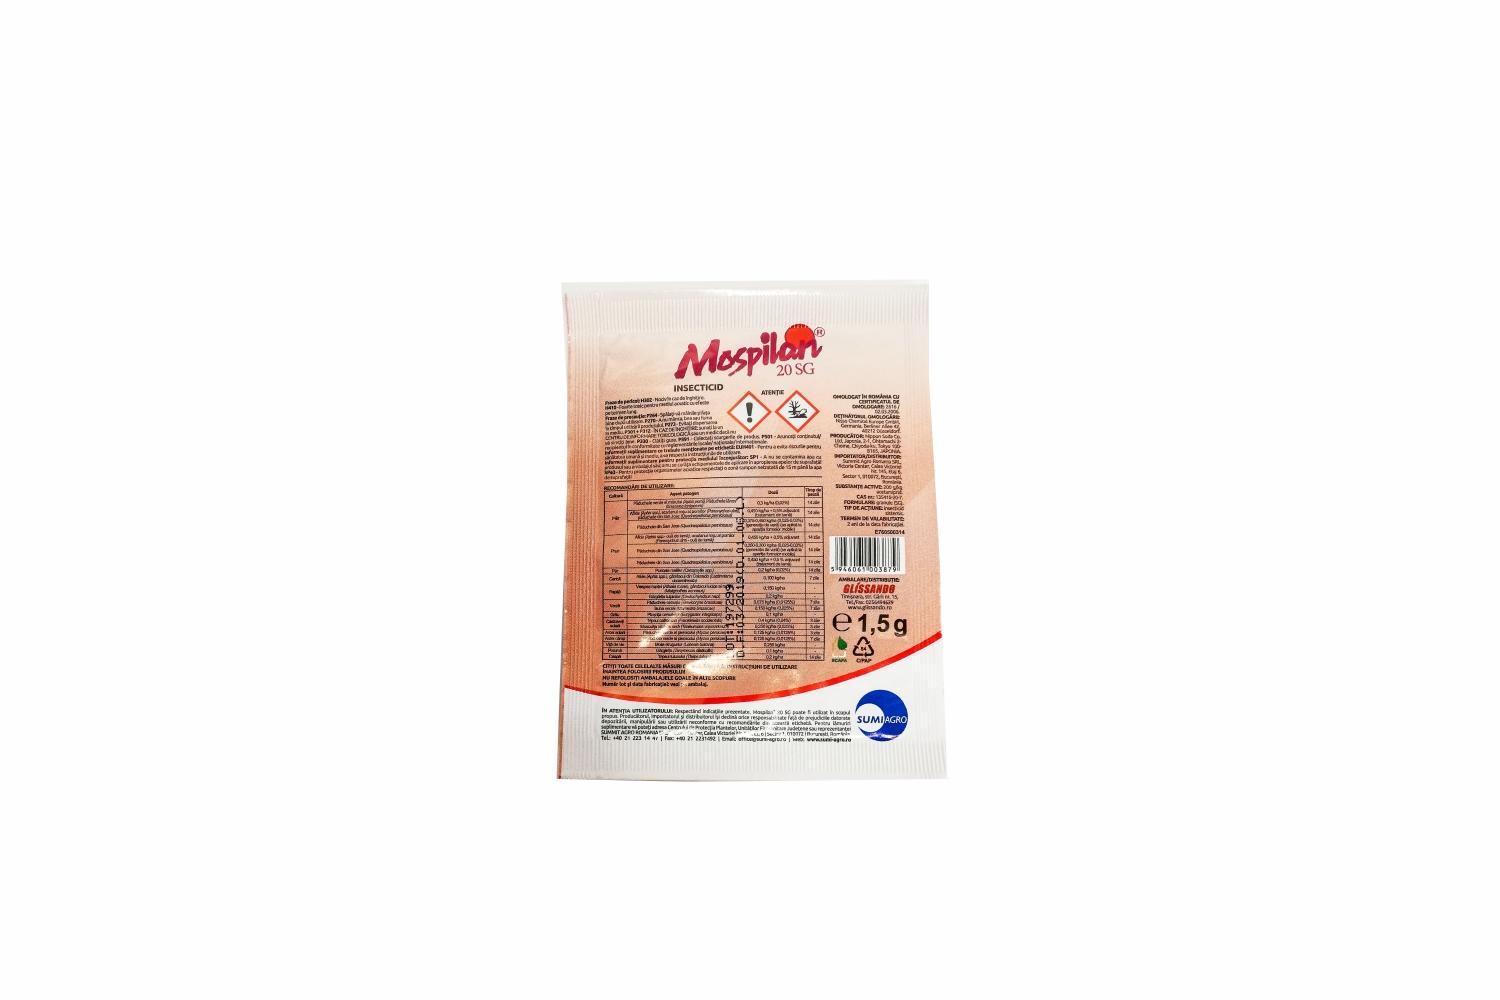 INSECTICID MOSPILAN 20 SG 1.5G SUMMIT AGRO